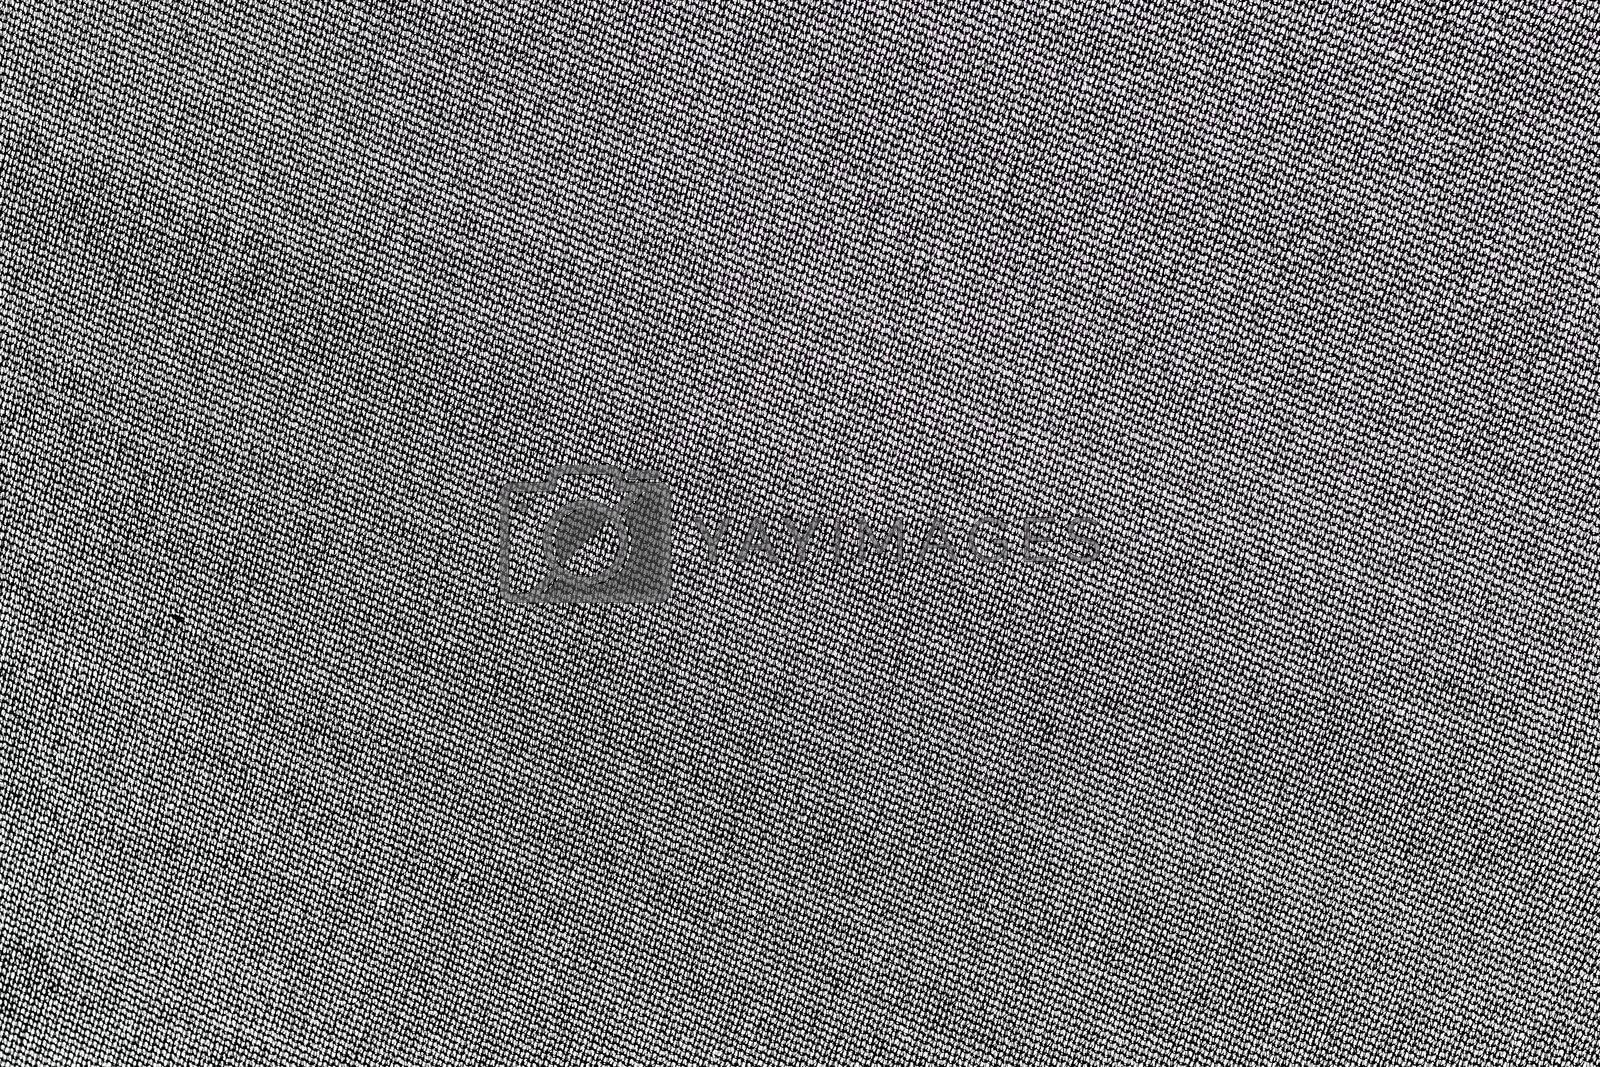 a good looking macro texture shoot from dotted cloth - gray color dominated. shoot looks interesting and very detailed.